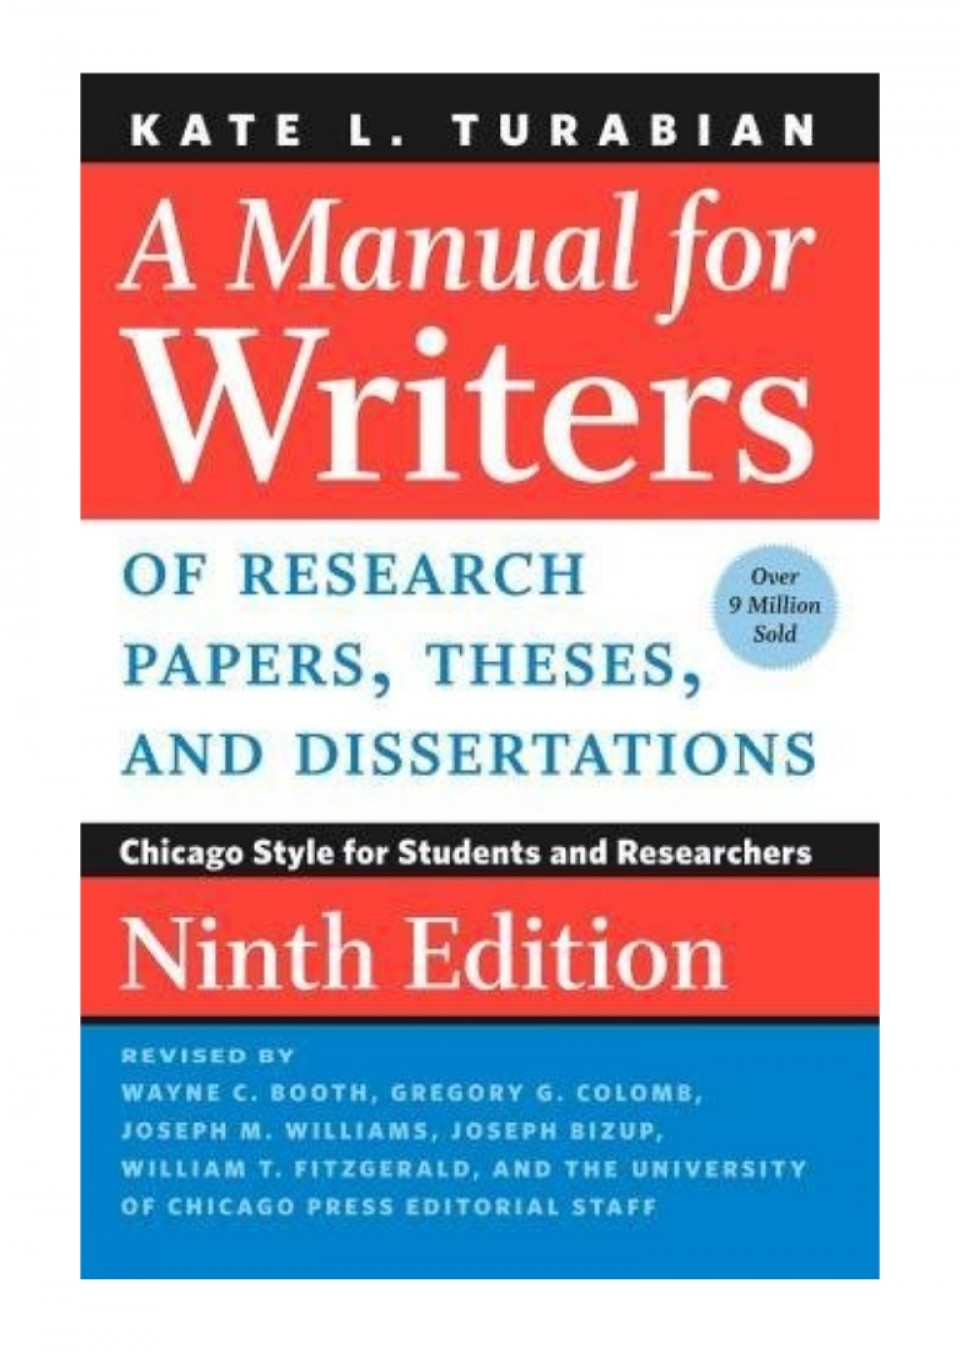 006 Manual For Writers Of Research Papers Theses And Dissertations Turabian Pdf Paper 022643057x Amanualforwritersofresearchpapersthesesanddissertationsnintheditionbykatel Wonderful A 960